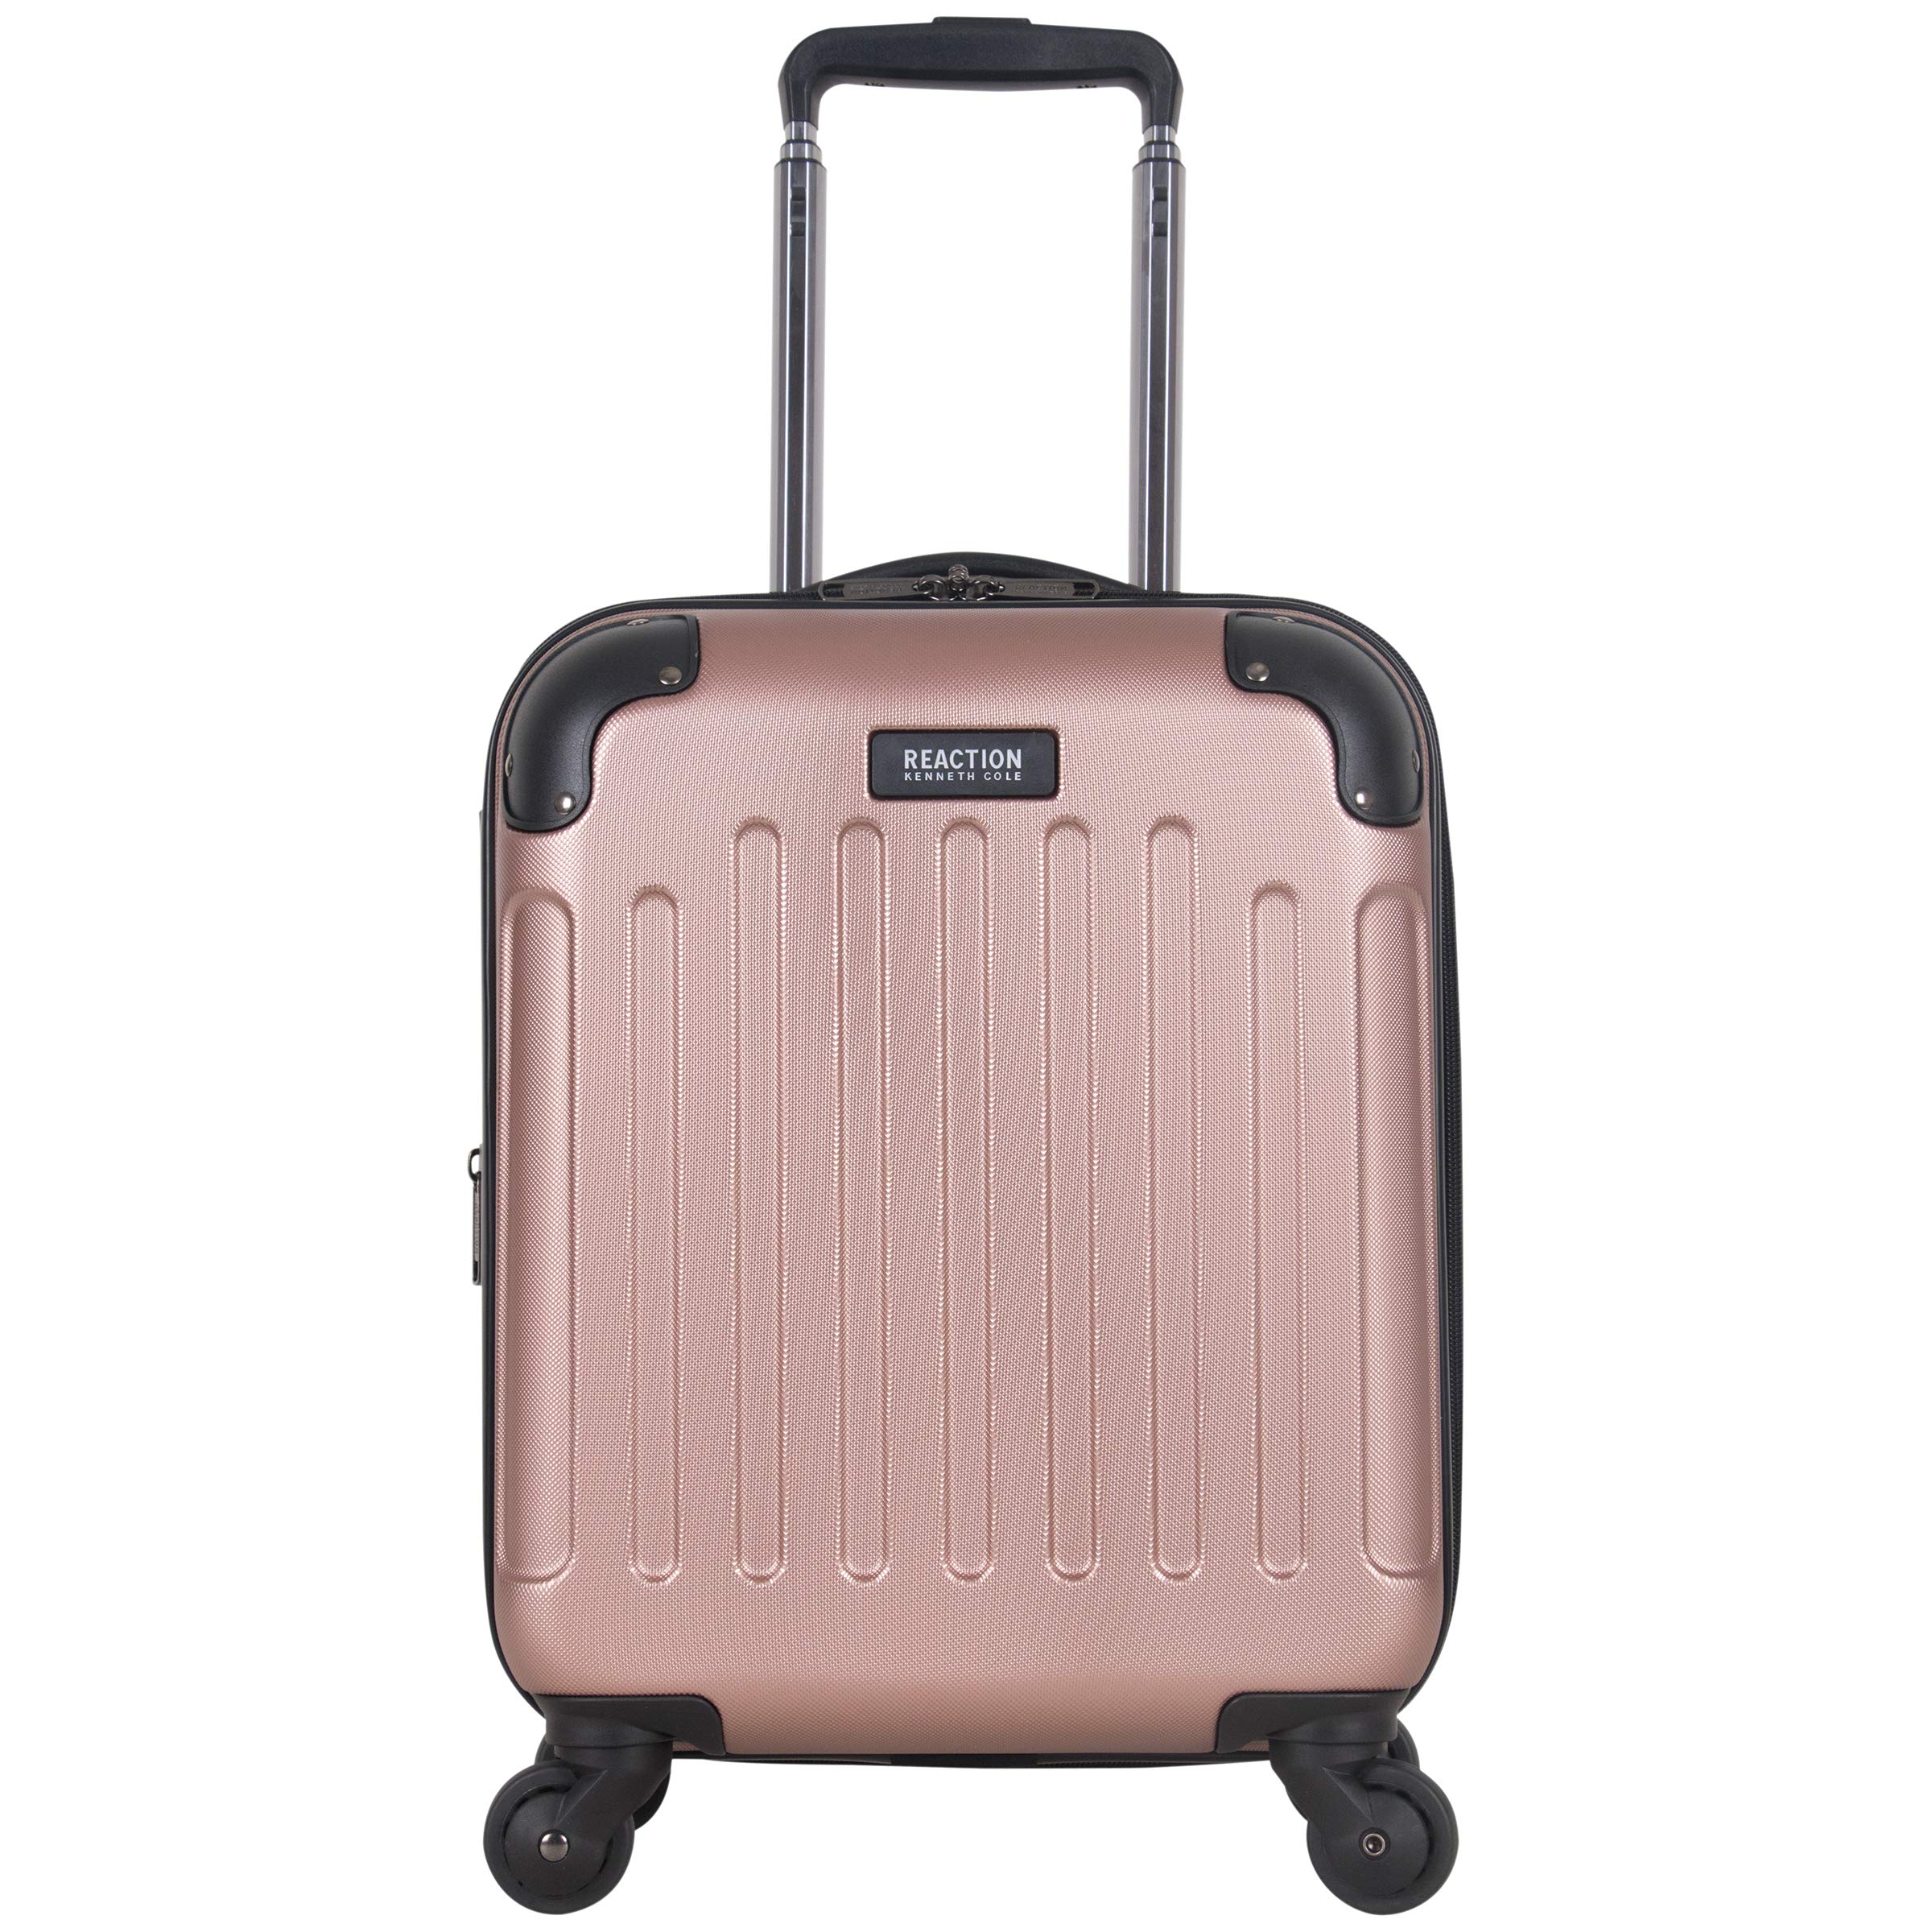 Kenneth Cole Reaction Renegade 16'' Hardside Expandable 4-Wheel Spinner Mini Carry-on Luggage, Rose Gold